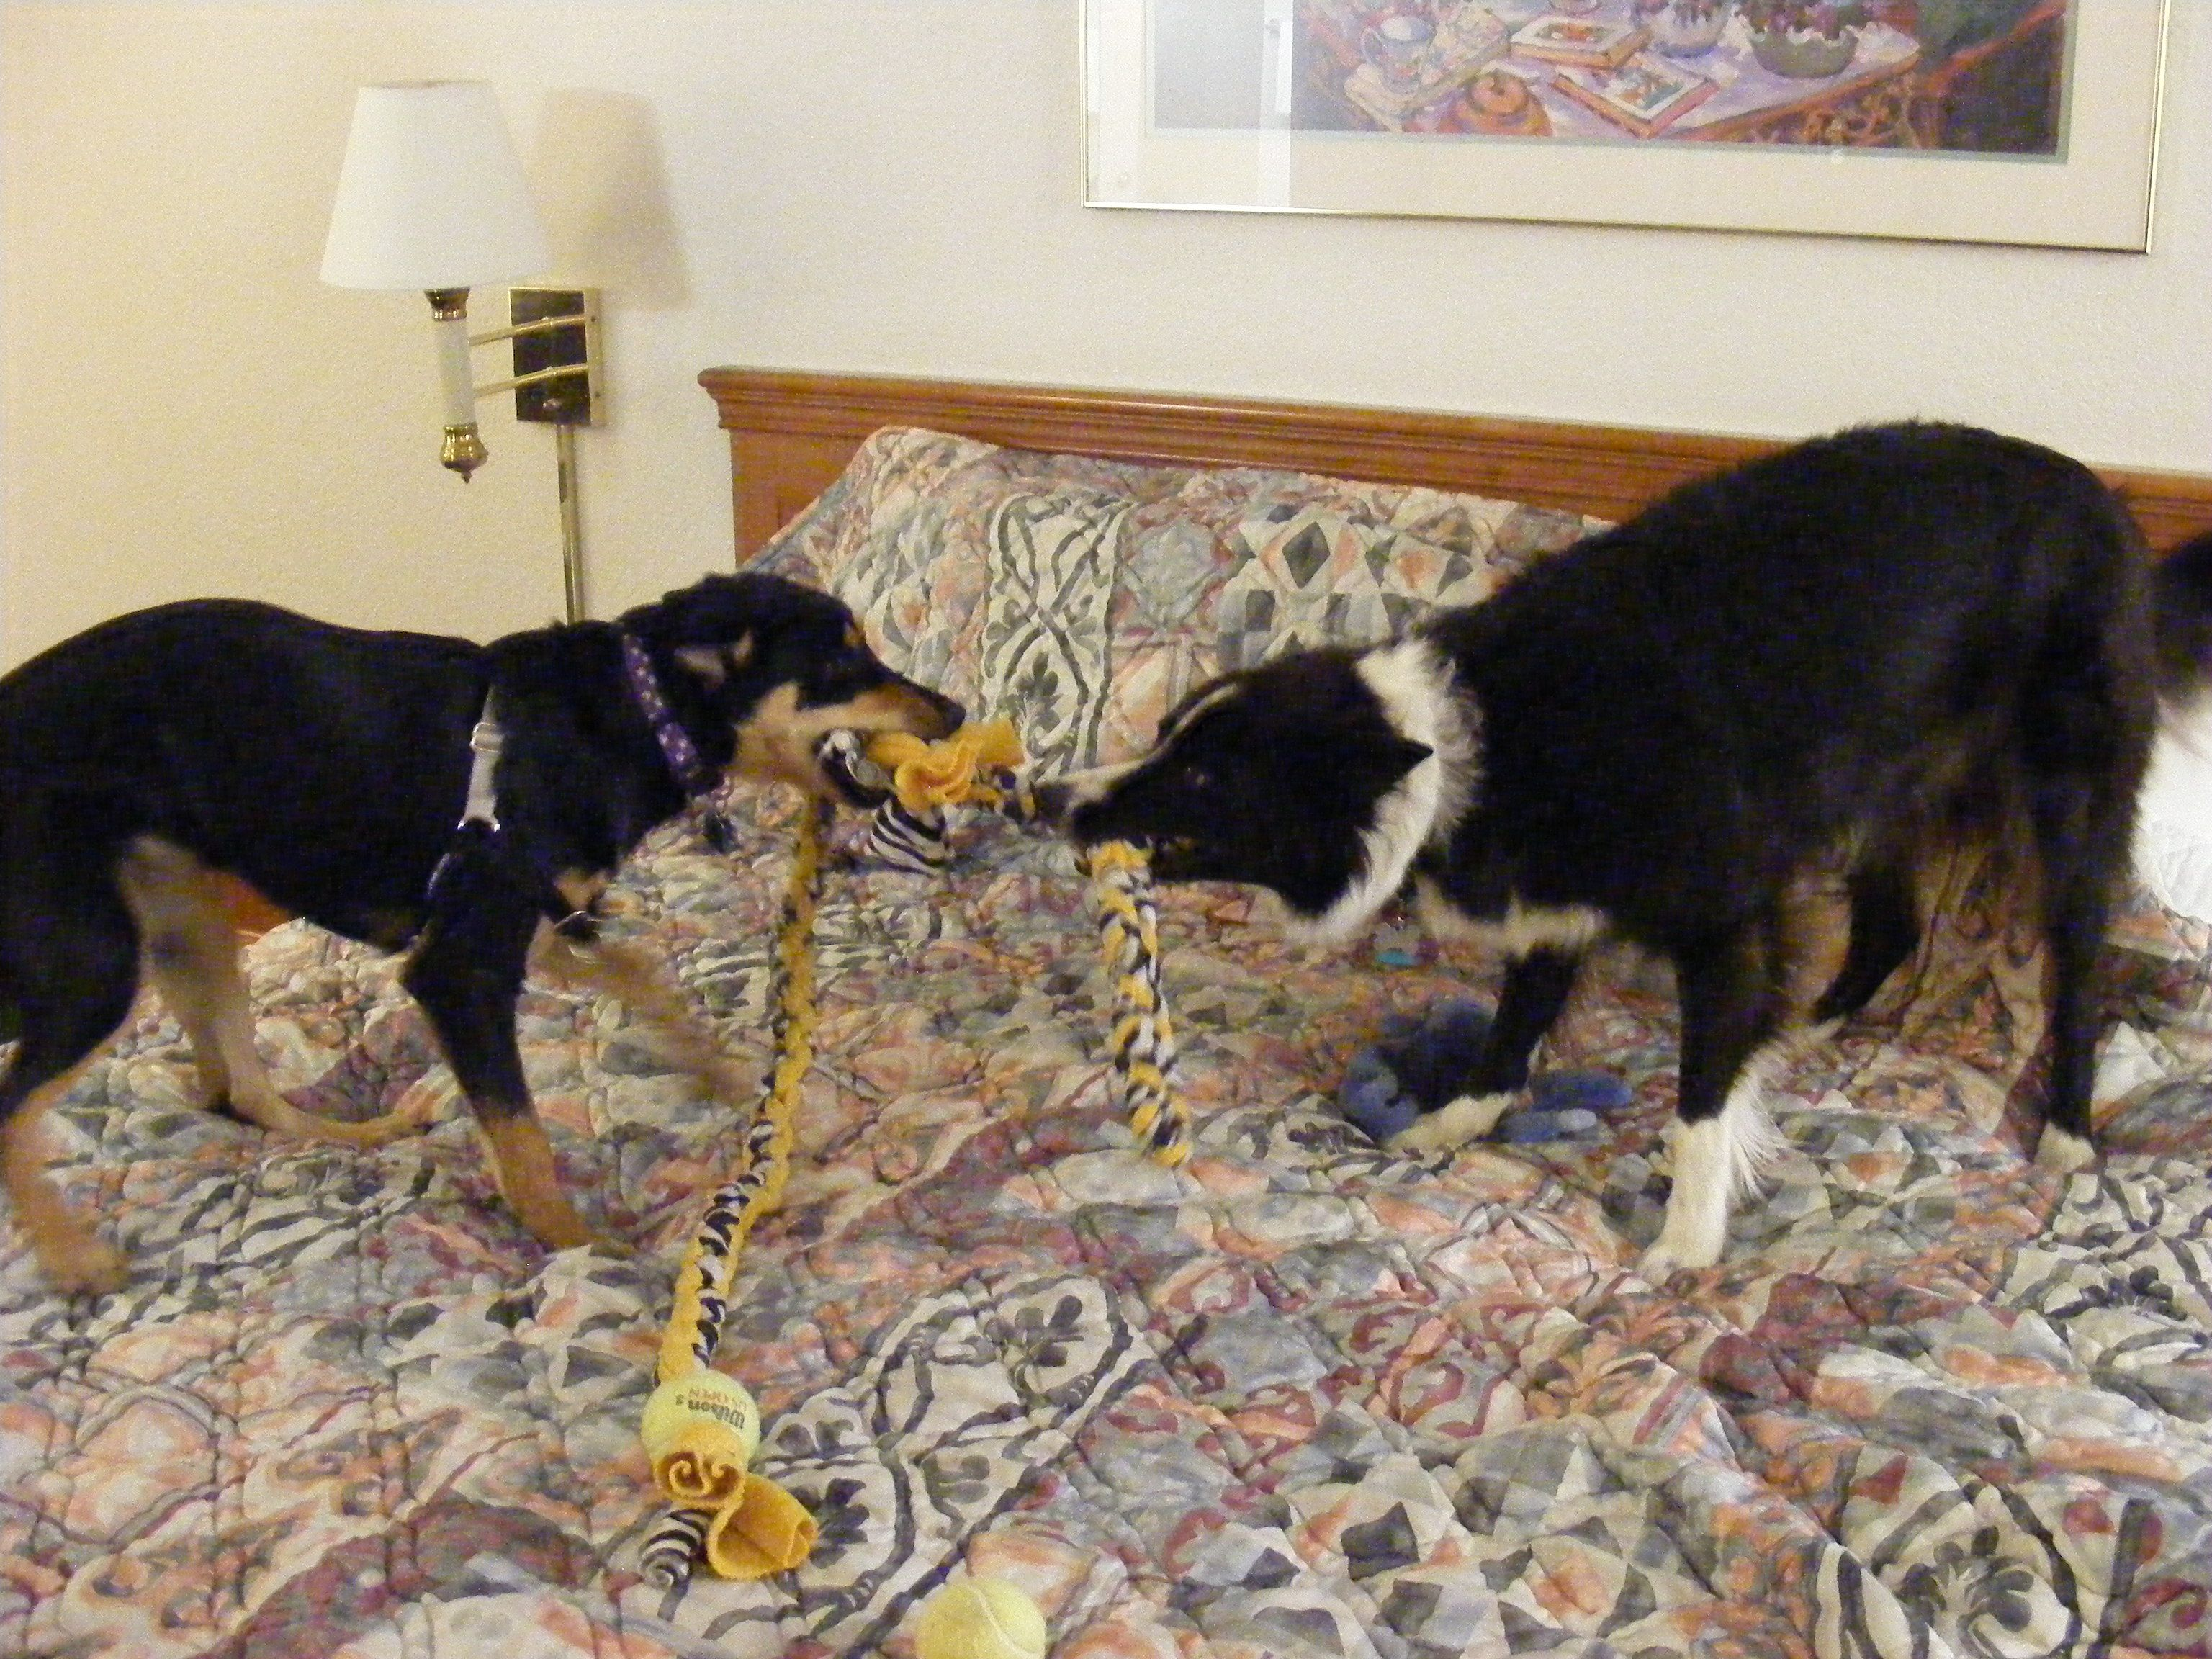 Logan and Birdie playing tug of war Tammy's Tugs at: http://www.etsy.com/listing/92864729/durable-fleece-machine-washable-dog-tug